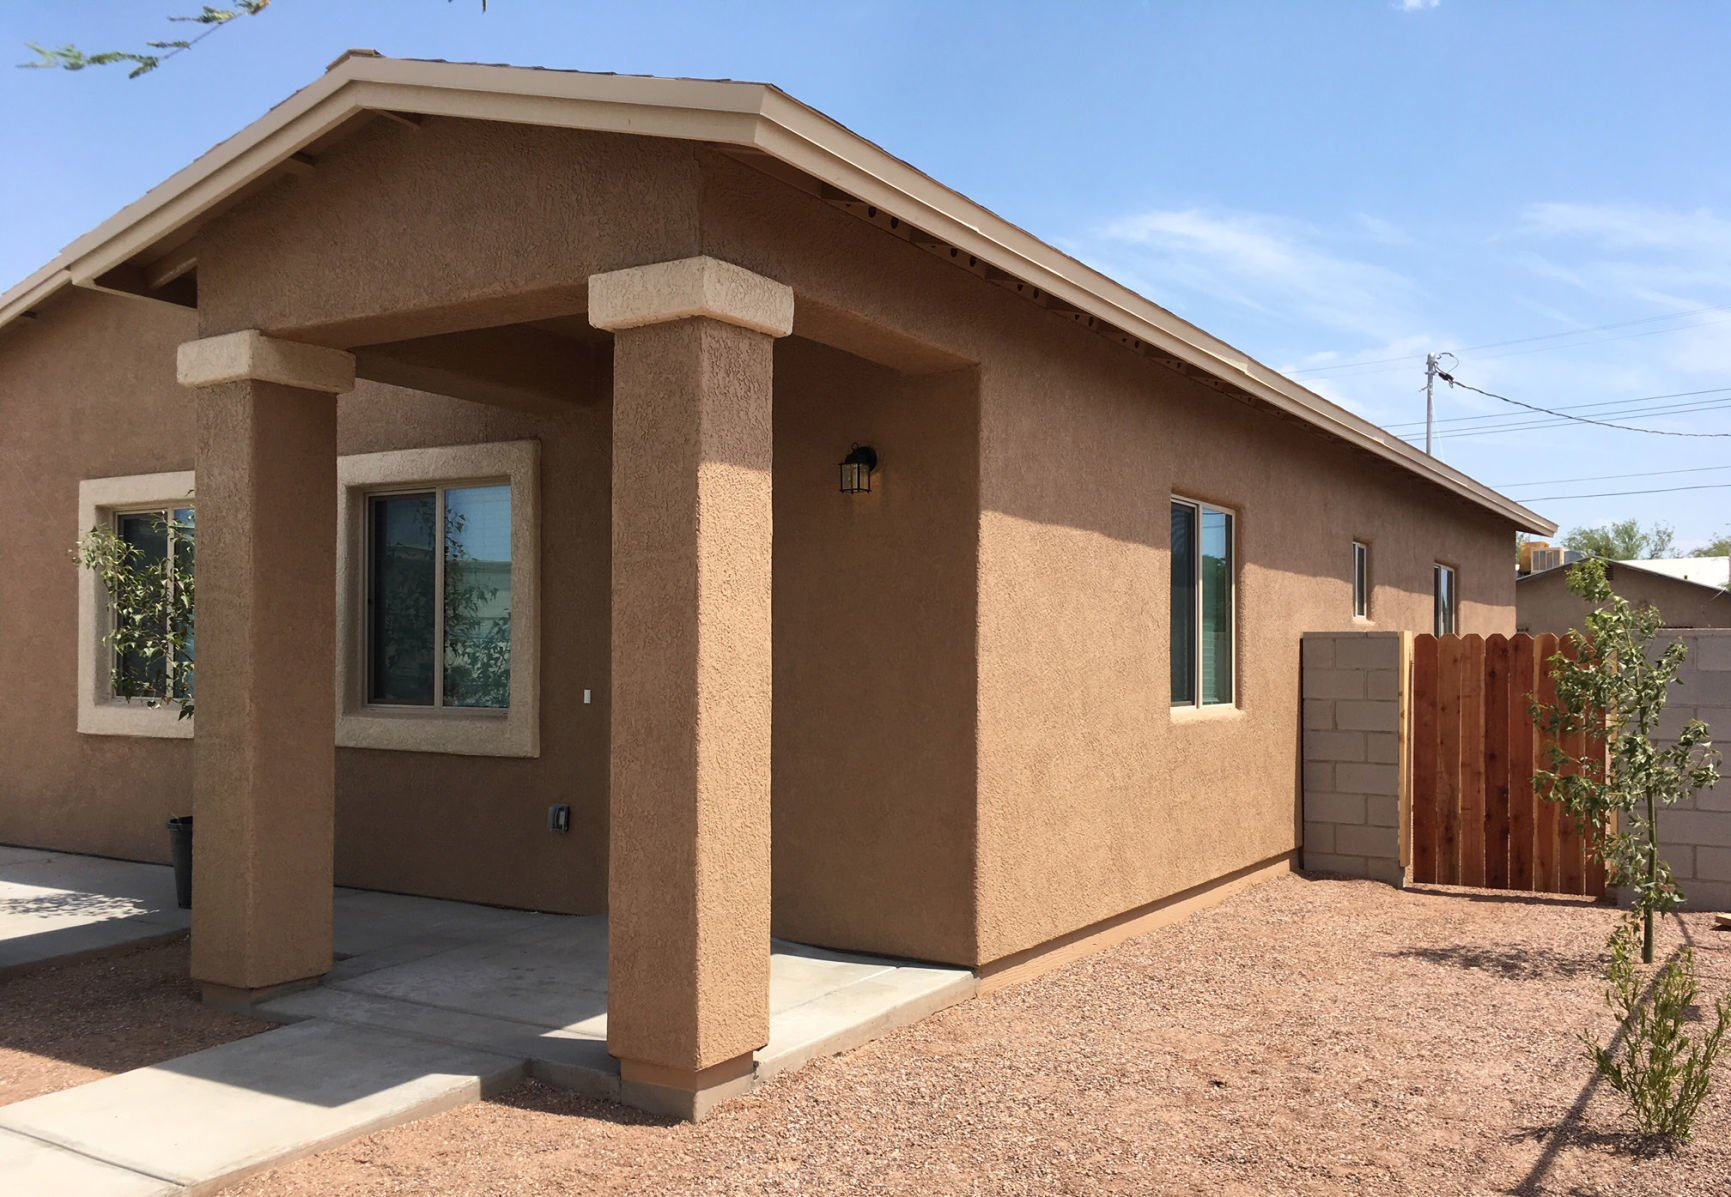 Primavera completes first of 4 homes in revitalization project in South Tucson | Tucson.com